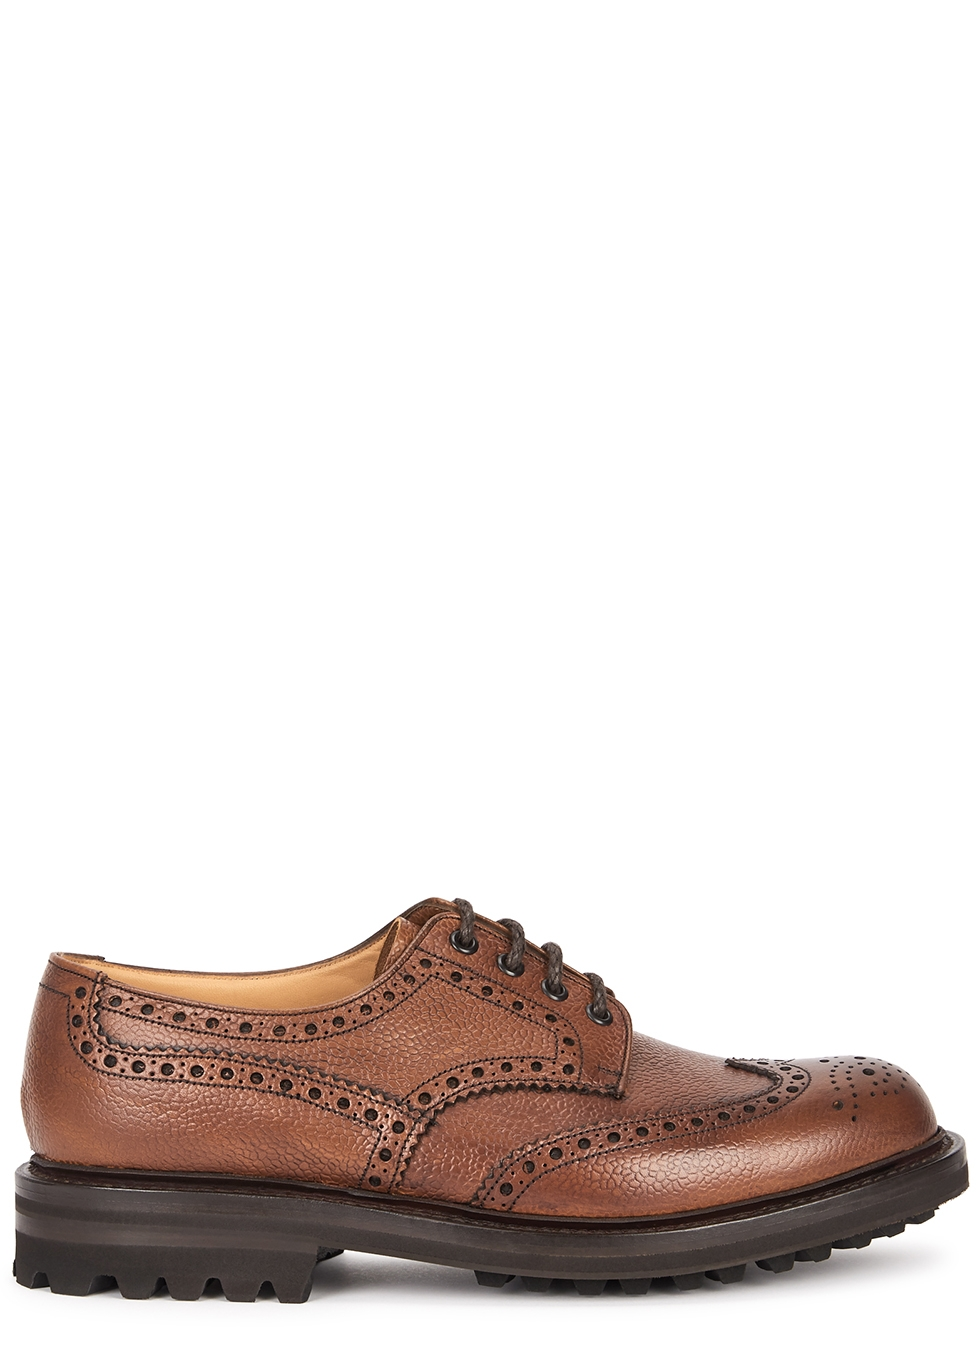 Mcpherson brown leather Derby shoes